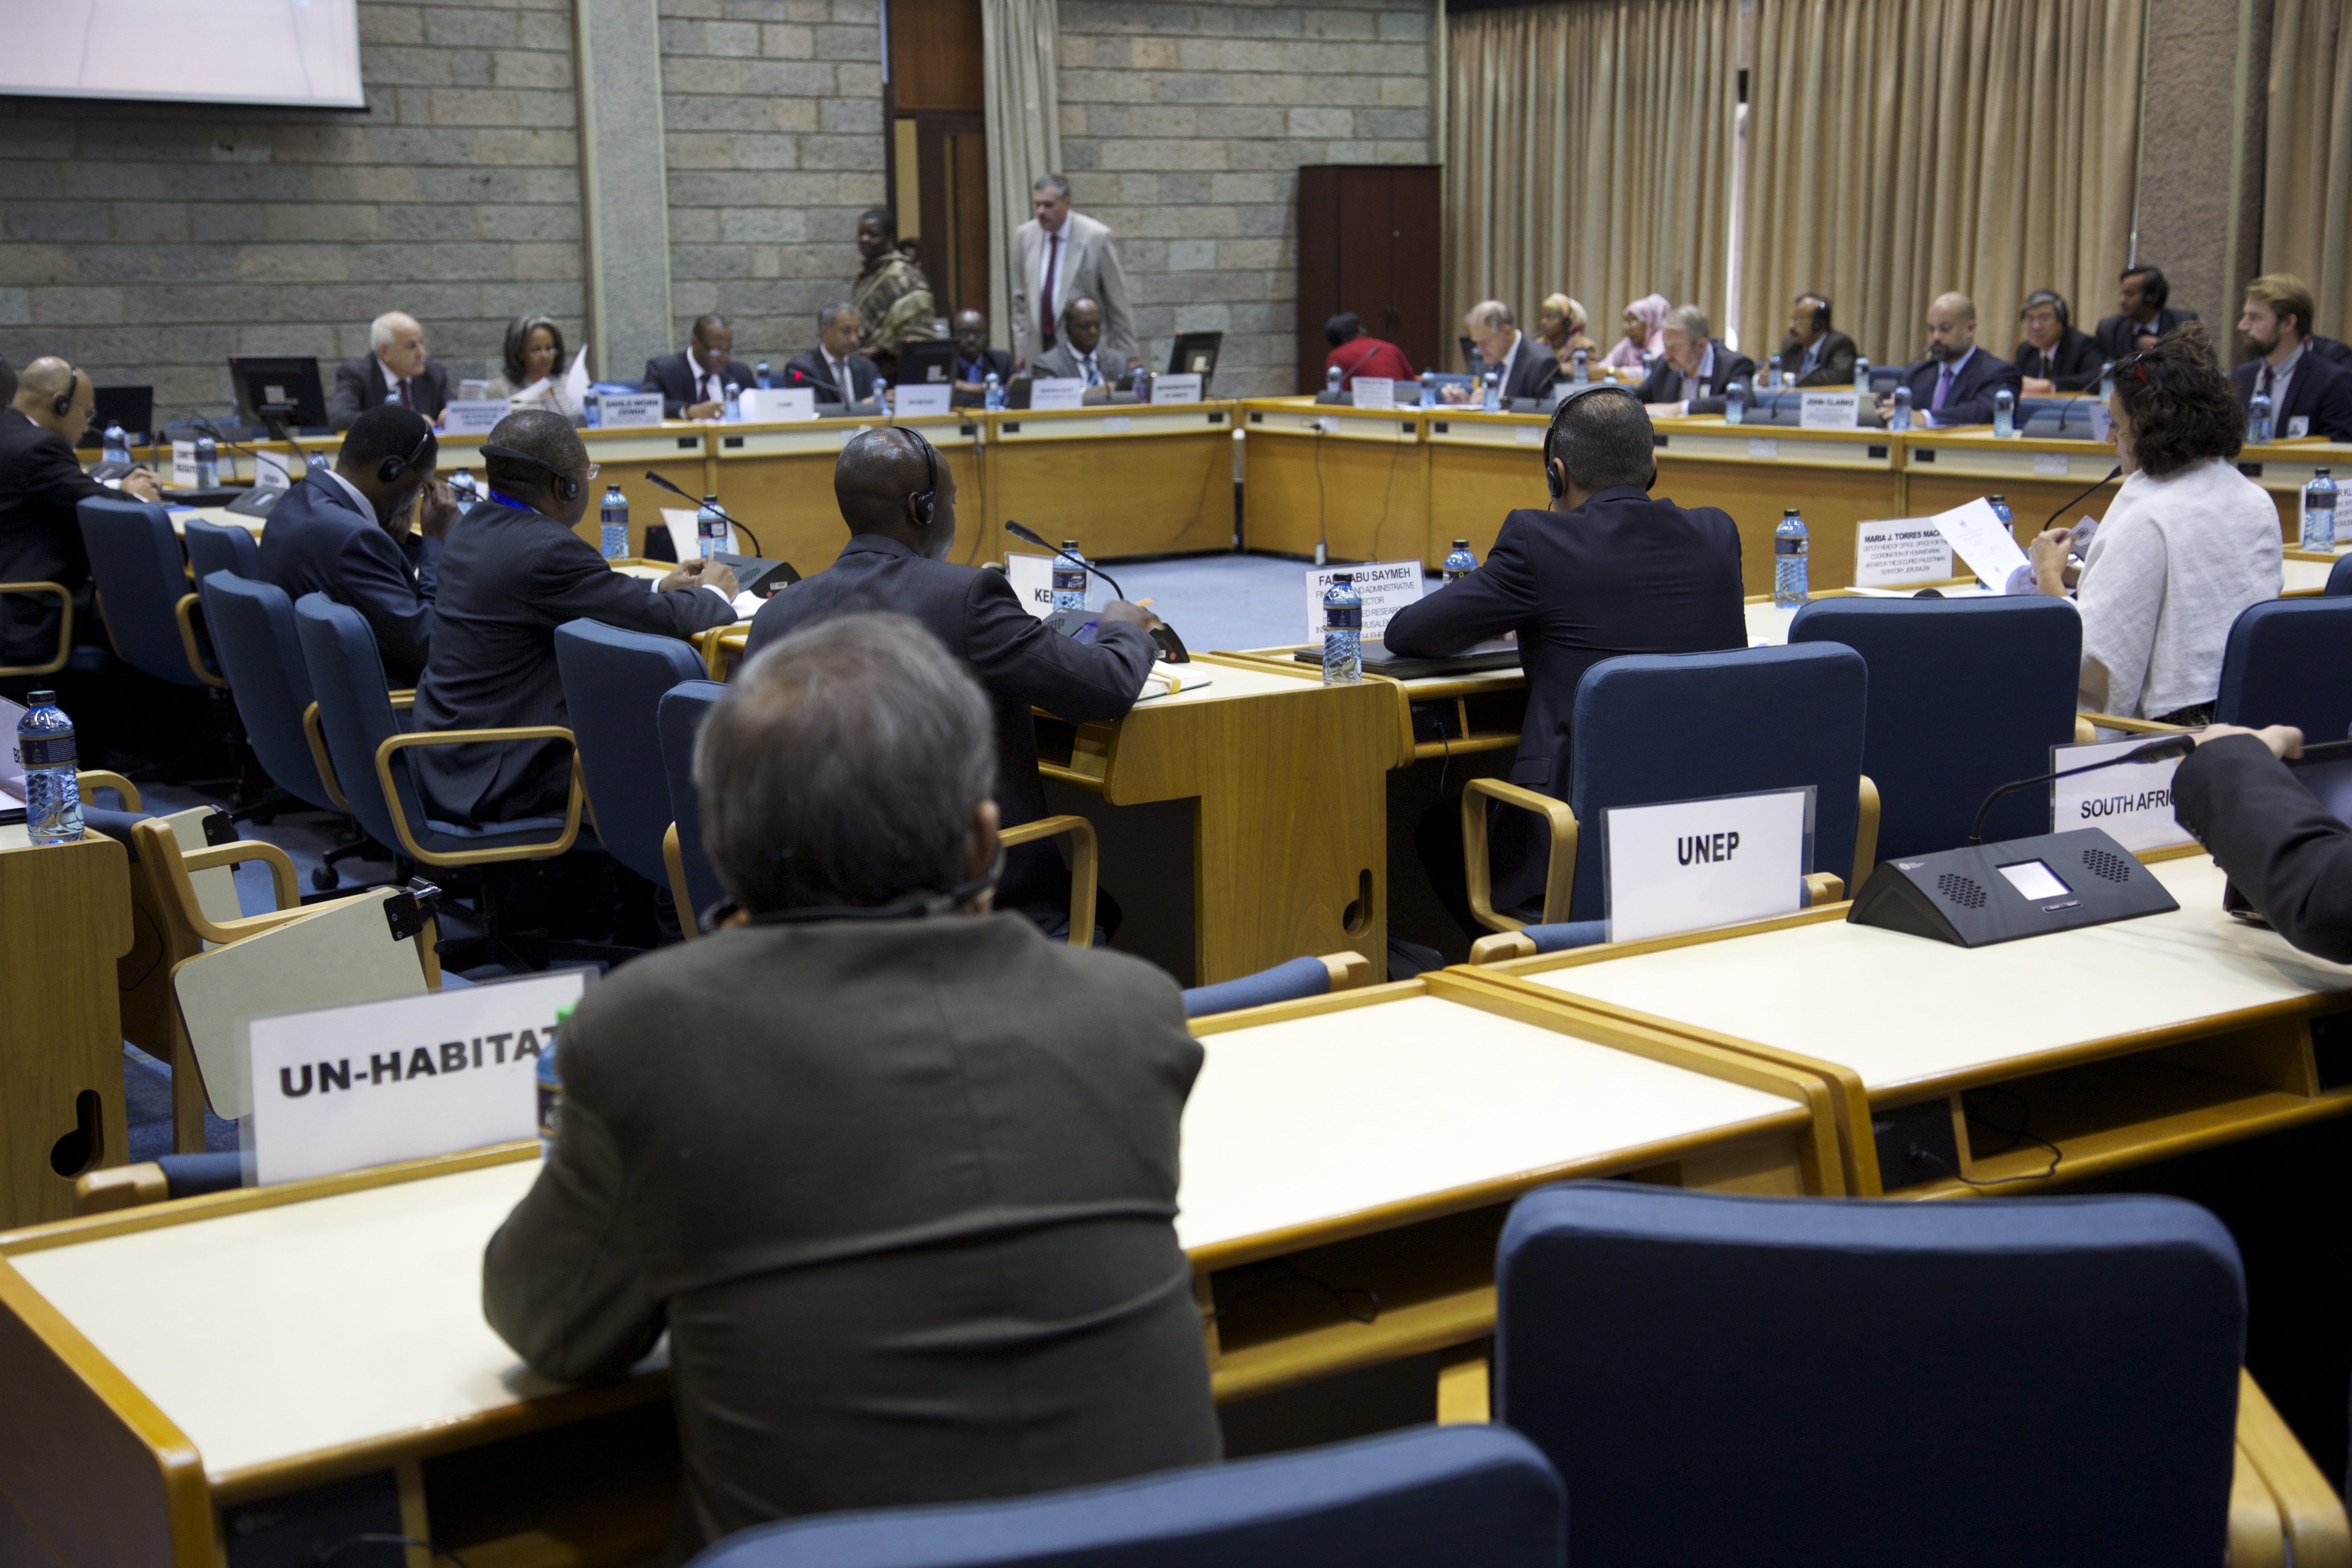 UNITED NATIONS SEMINAR ON ASSISTANCE TO PALESTINIAN PEOPLE IN NAIROBI